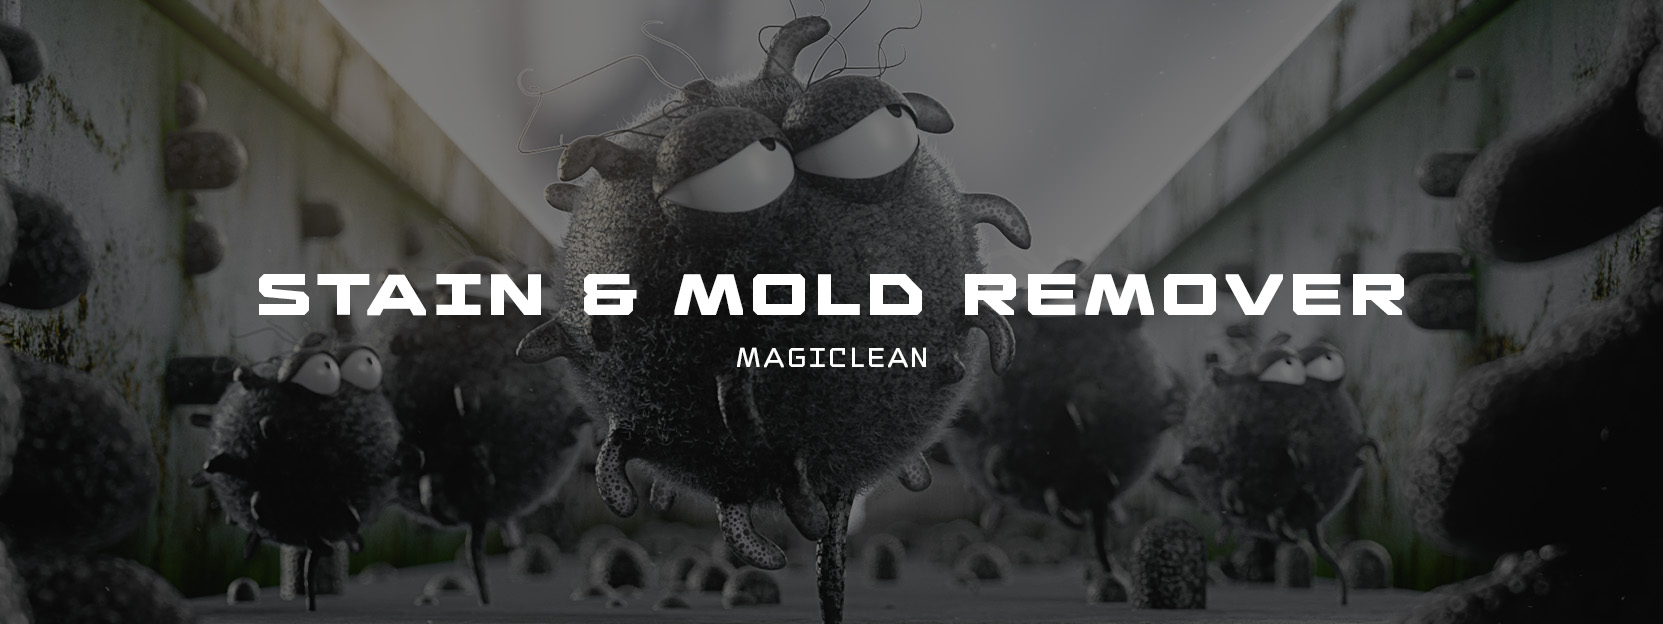 Stain & Mold Remover